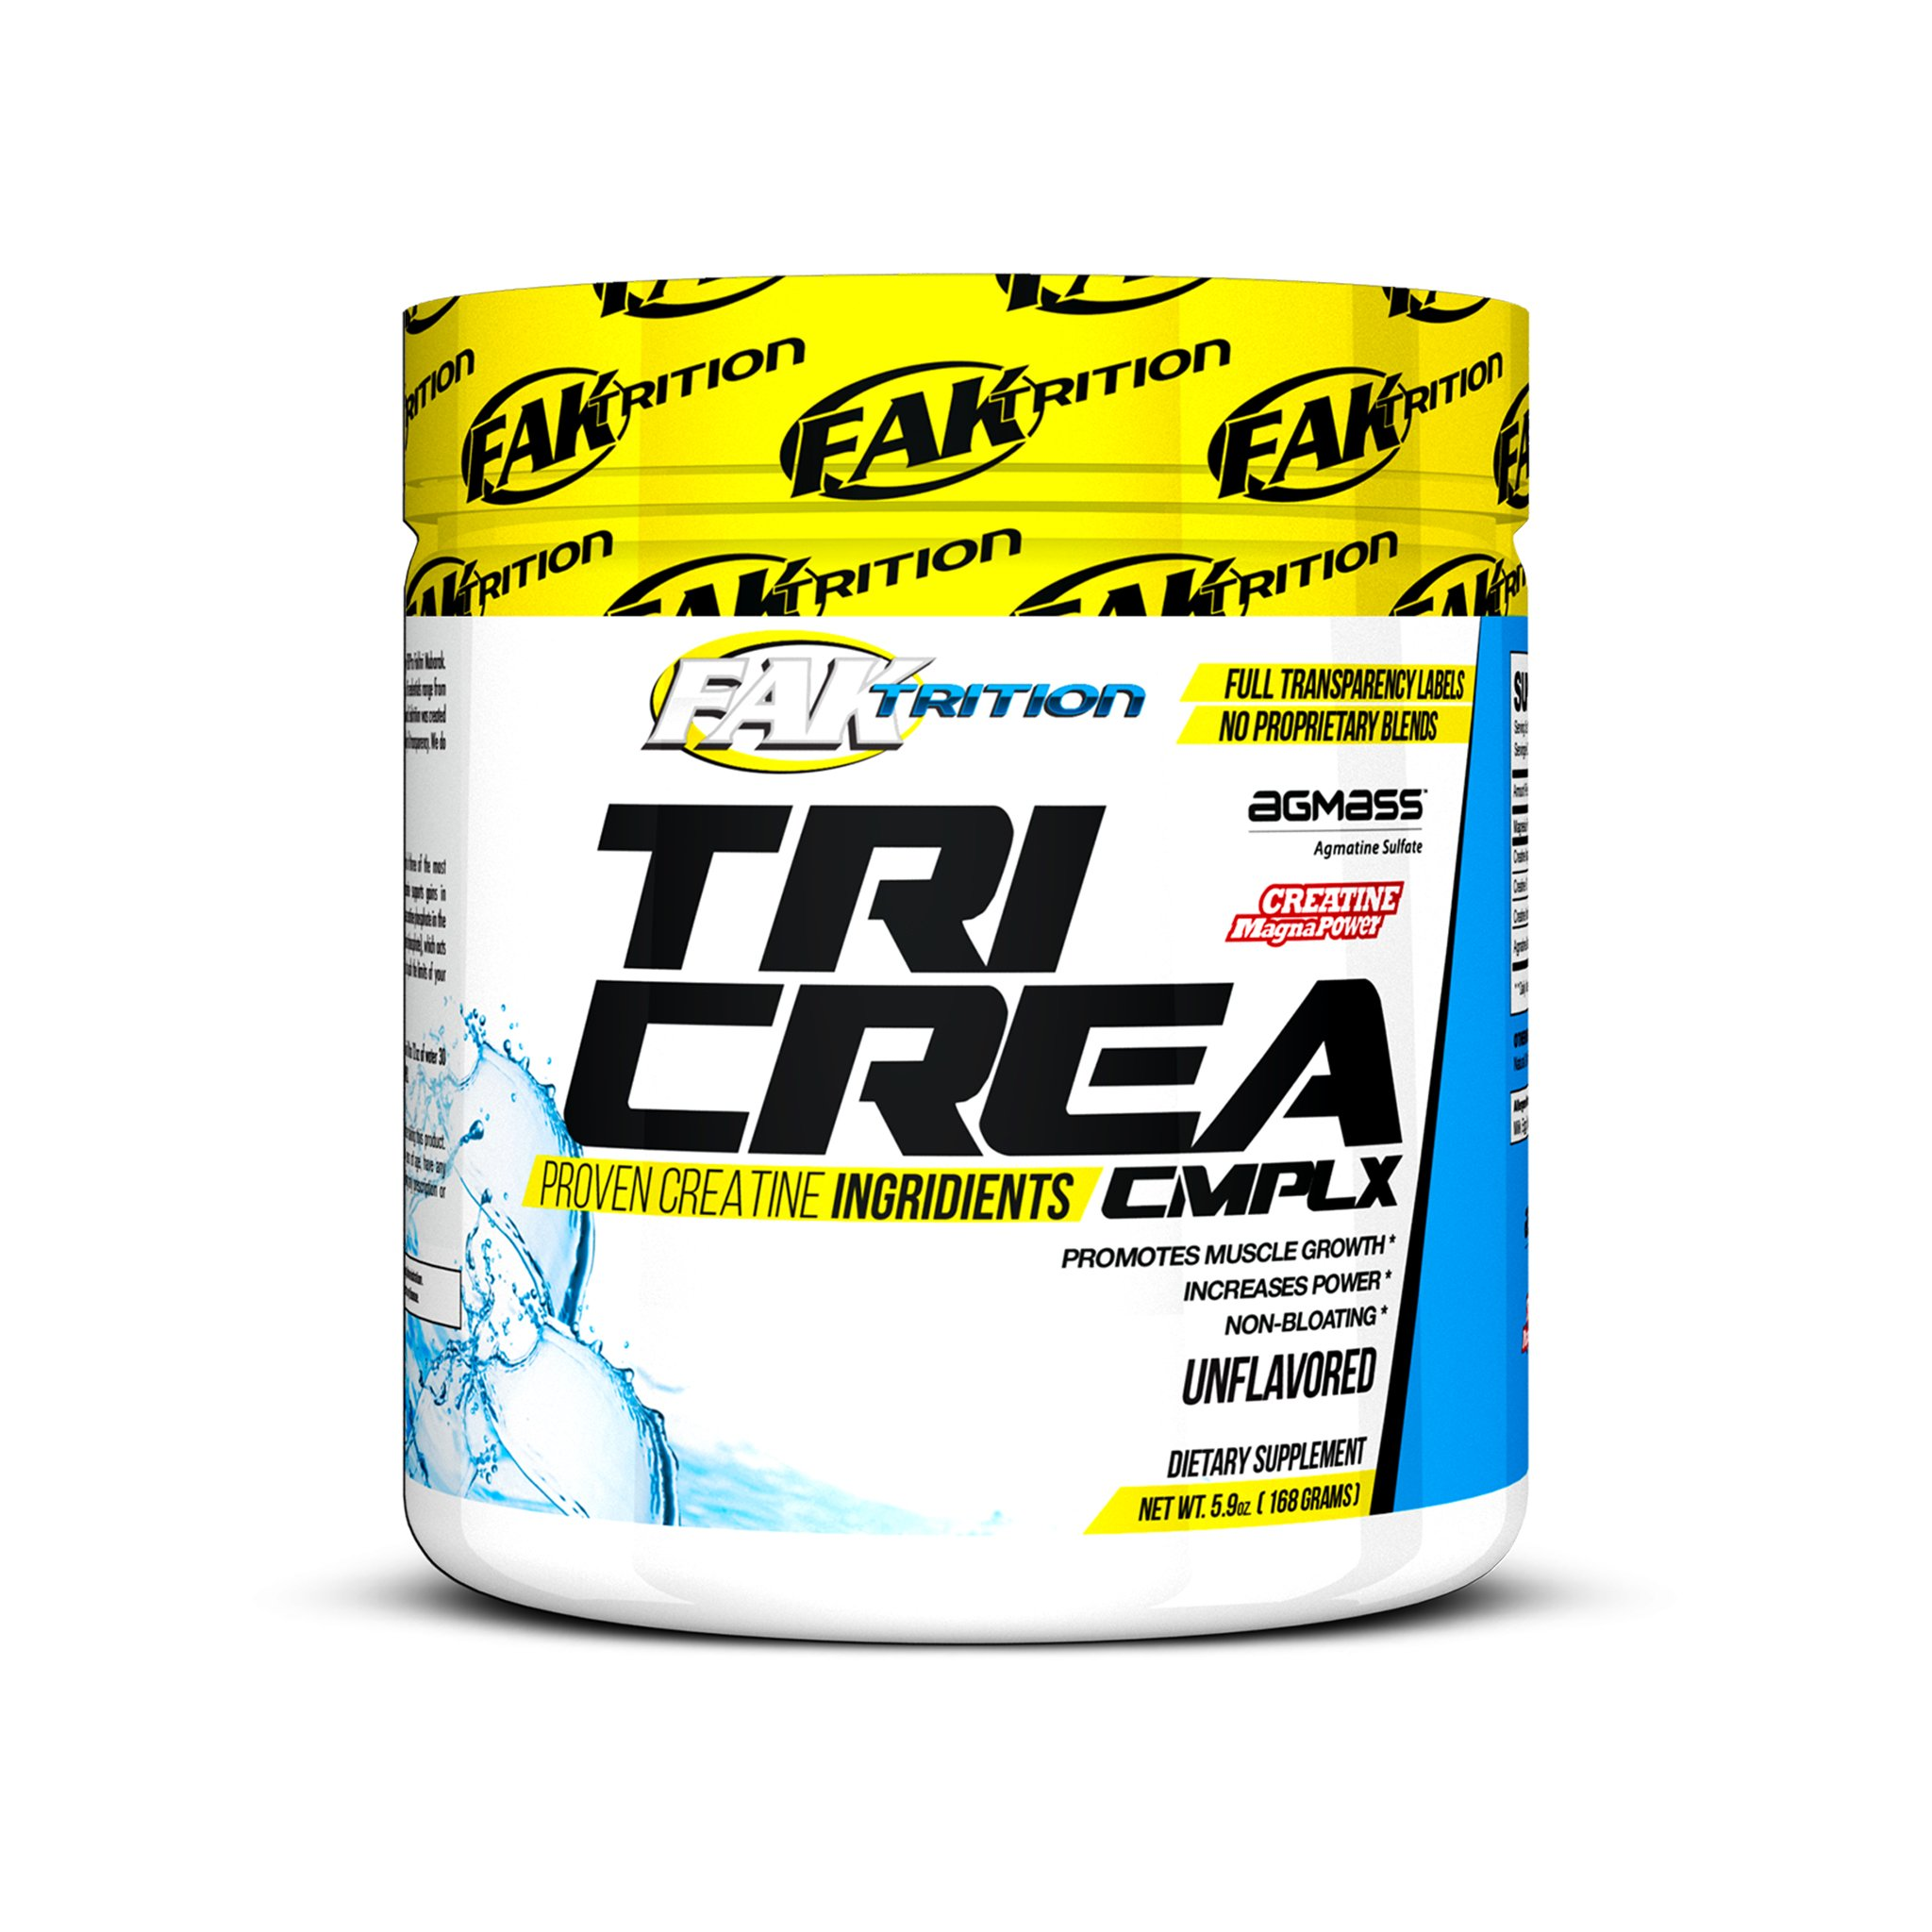 TRI CREATINE - COMPLEX - Unlflavored - Muscle Growth - No Bloating - 168 Grams - Faktrition - Made in the USA